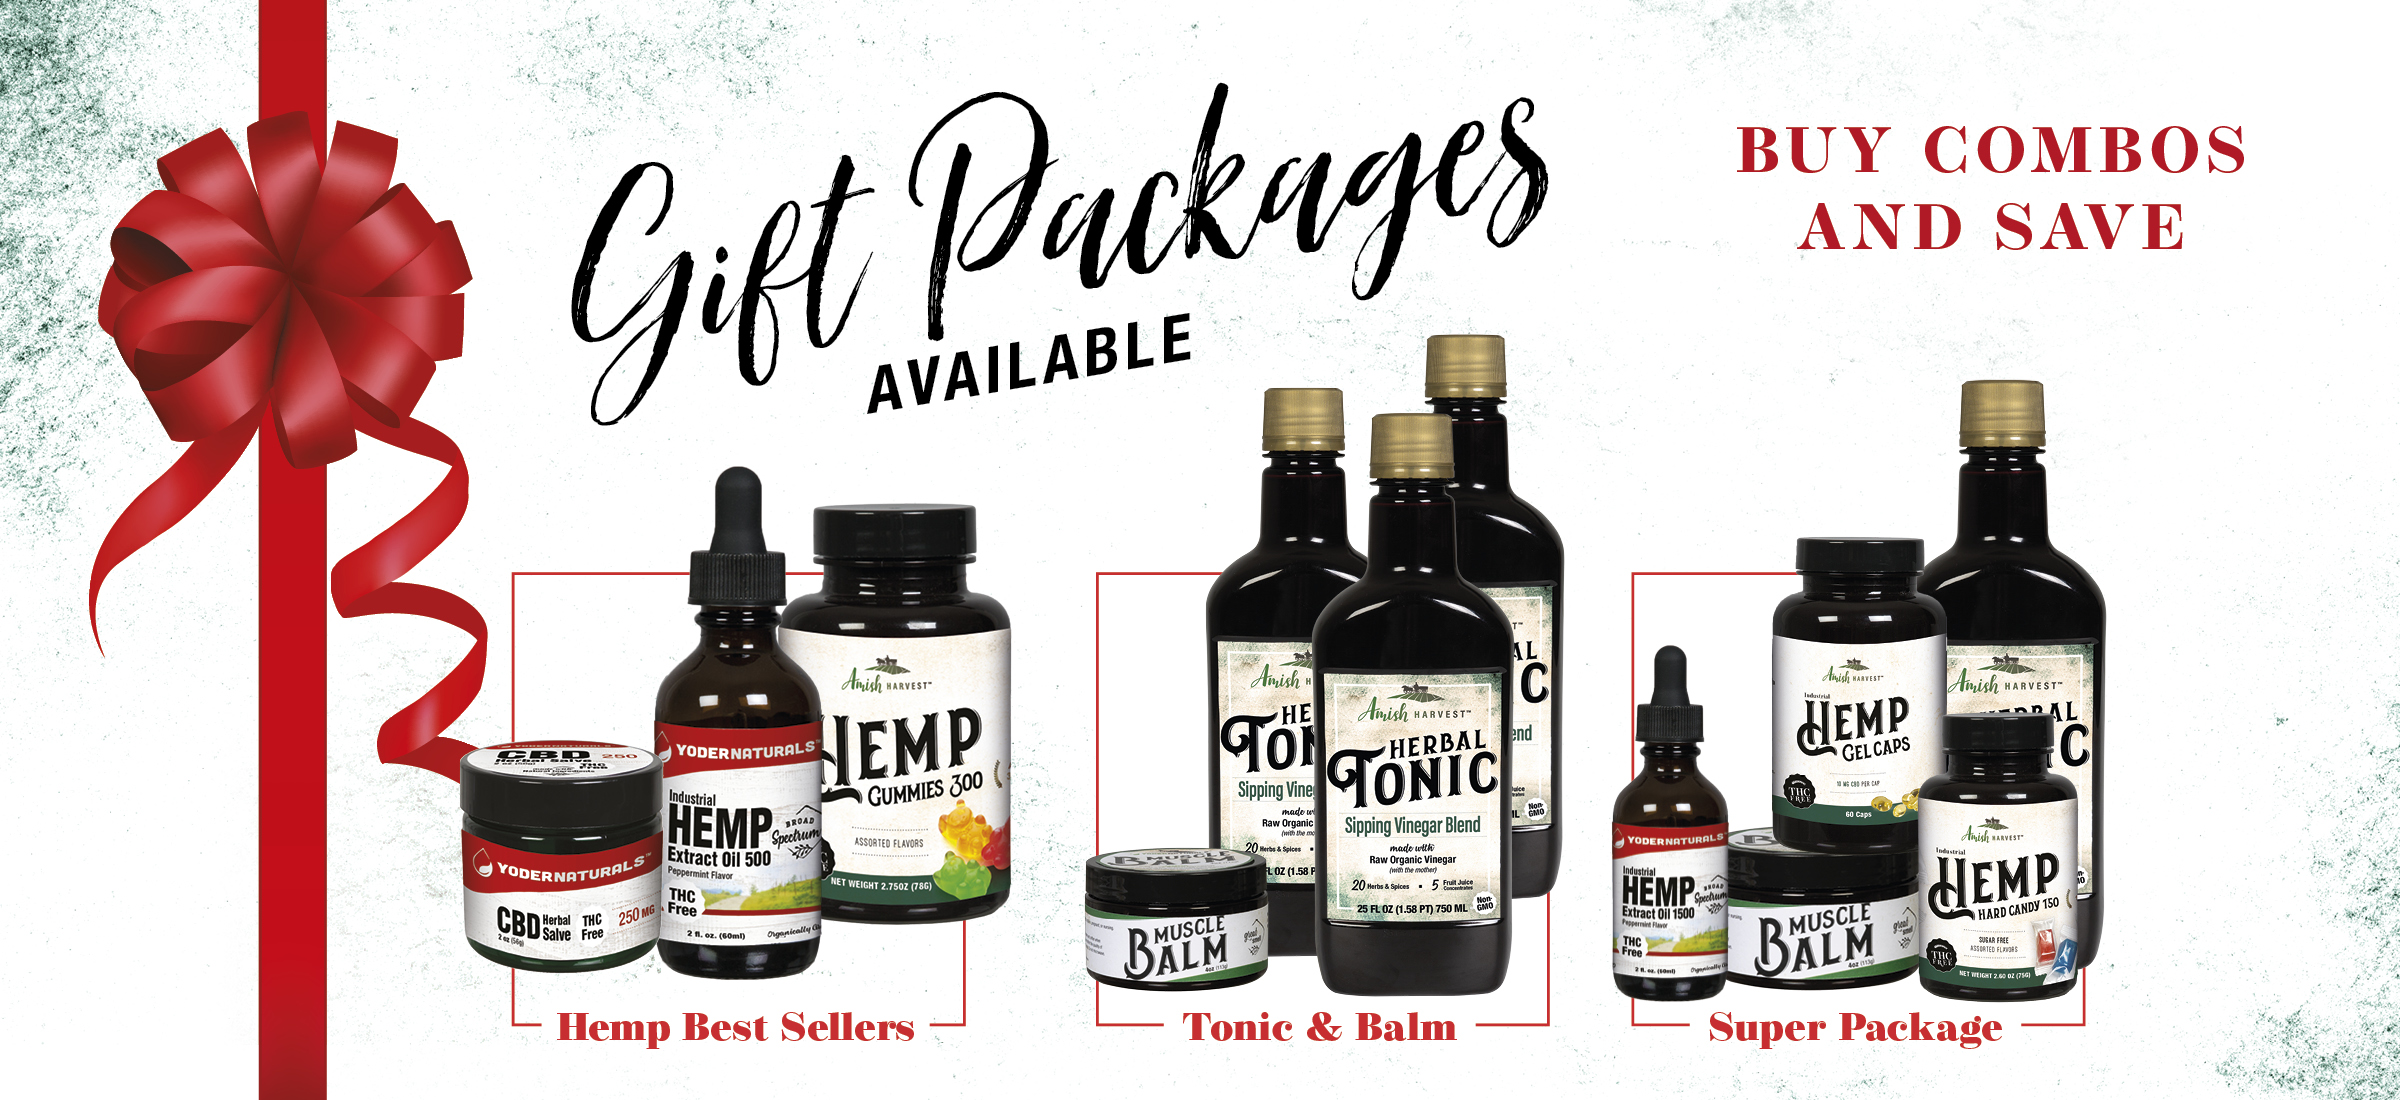 Gift Packages Available